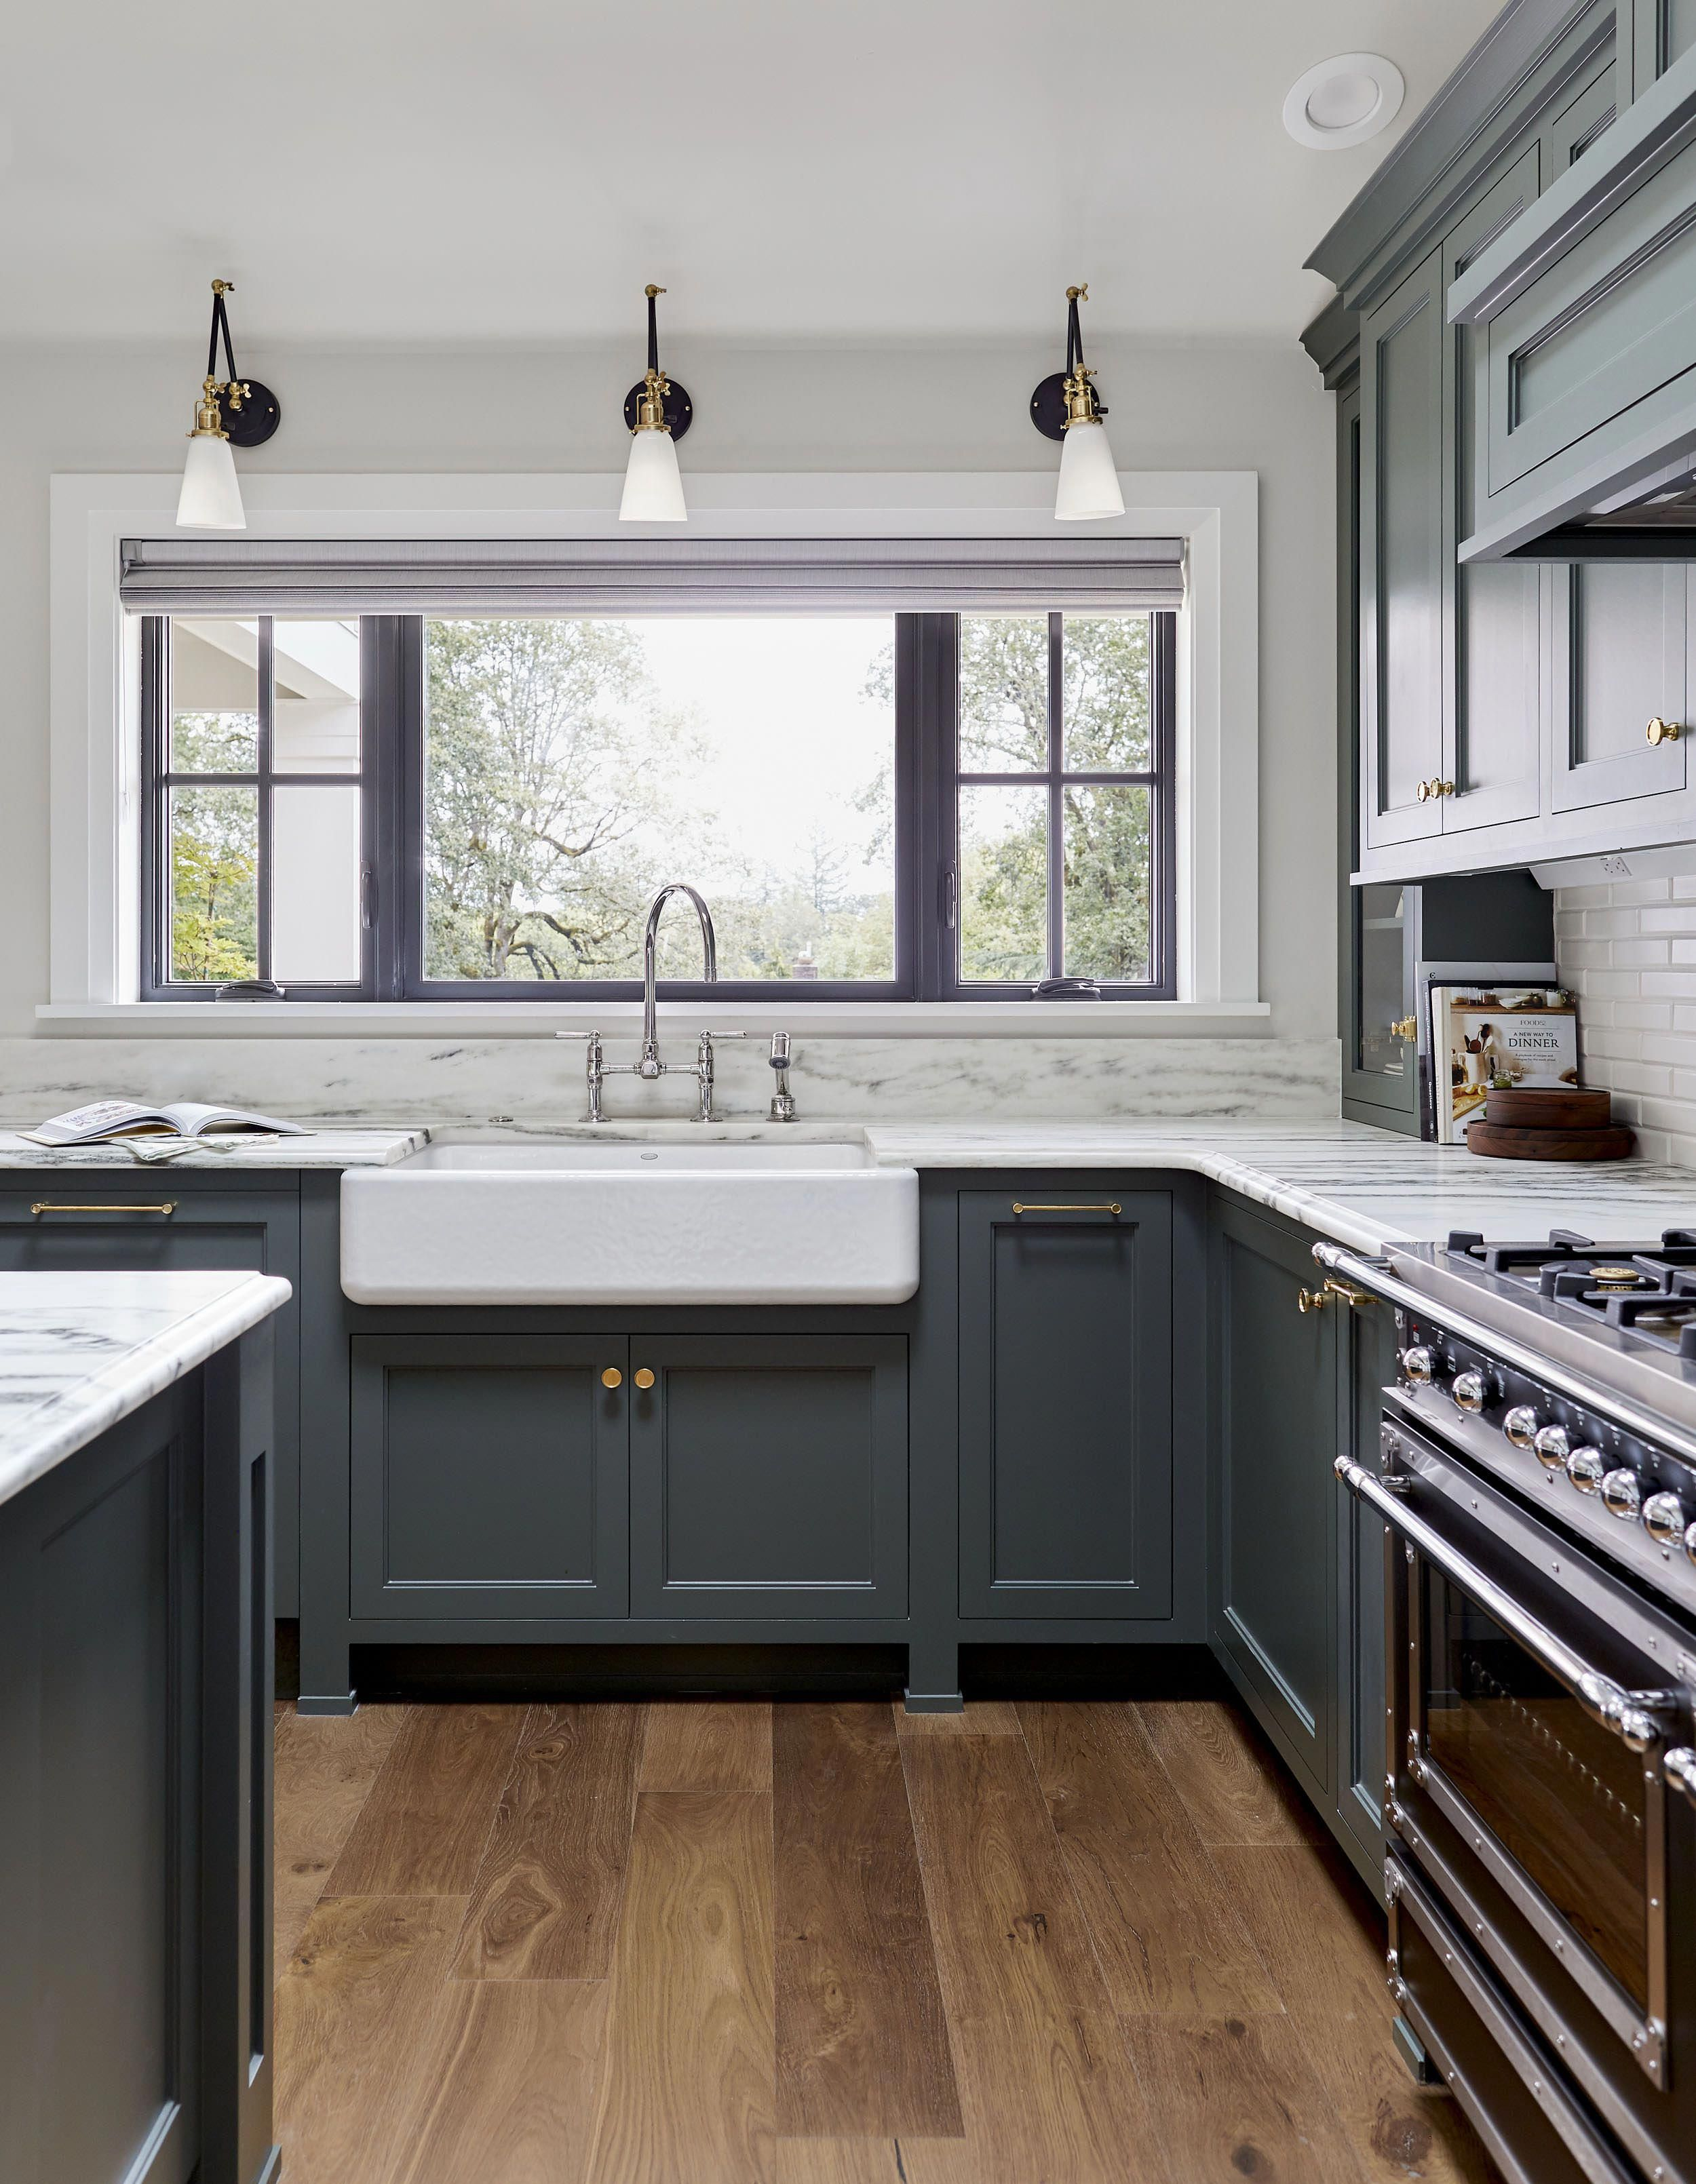 Emily Henderson Portland Kitchen Remodel Love The Cabinets Love The Big Window Above The Kitchen New Kitchen Cabinets Shaker Kitchen Cabinets Kitchen Remodel